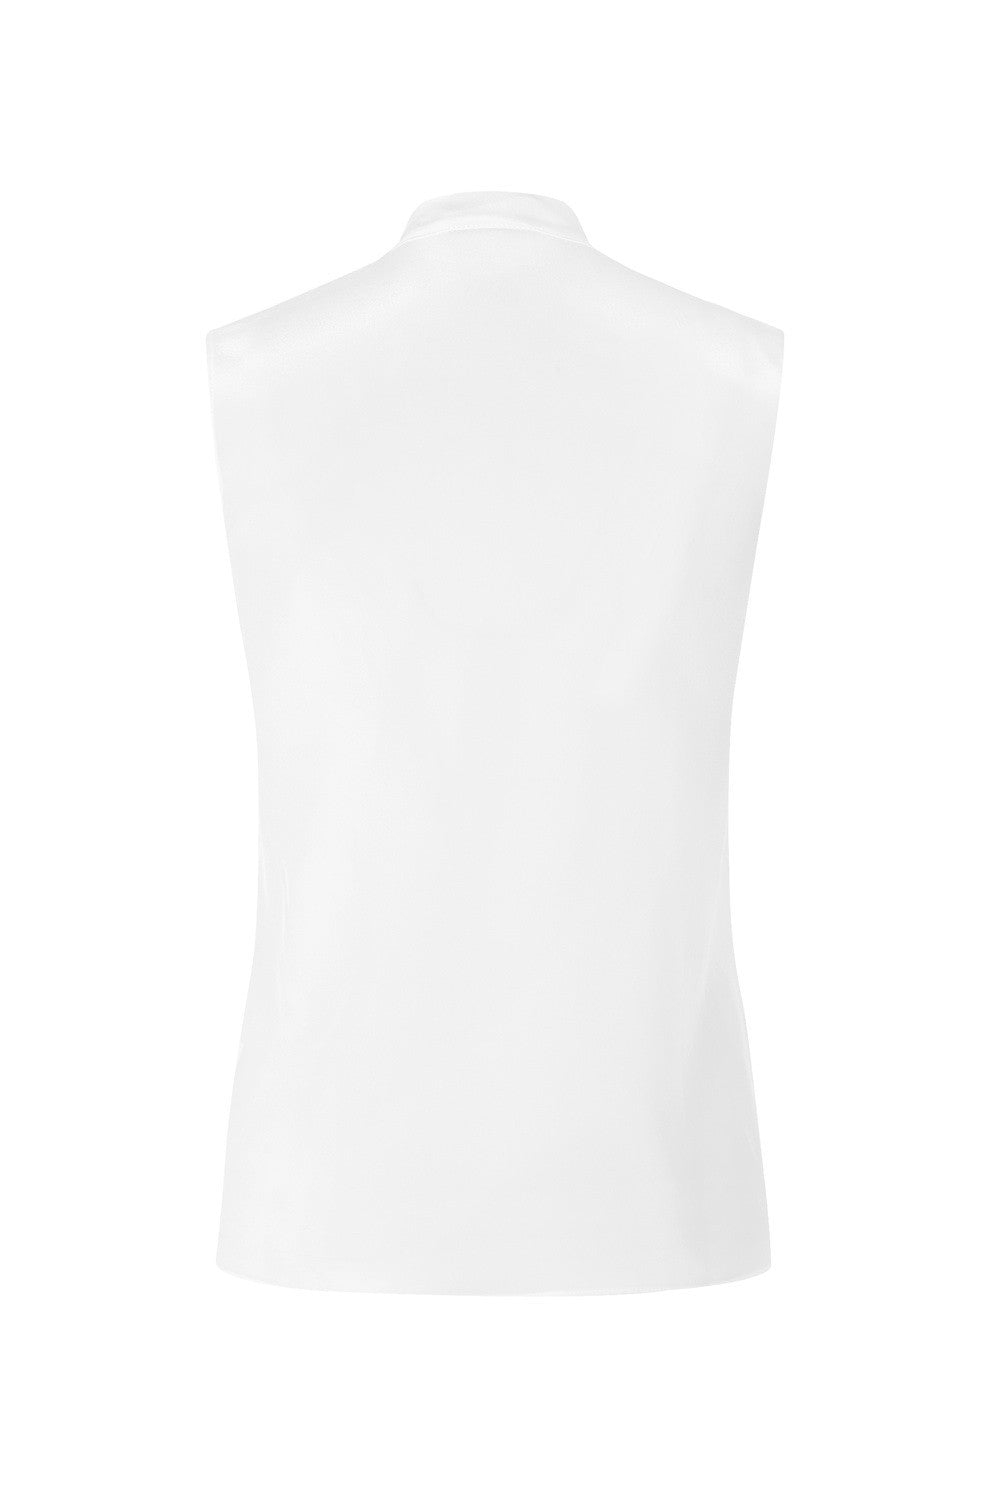 Leonie - Ivory/Navy - Womenswear - Madderson London